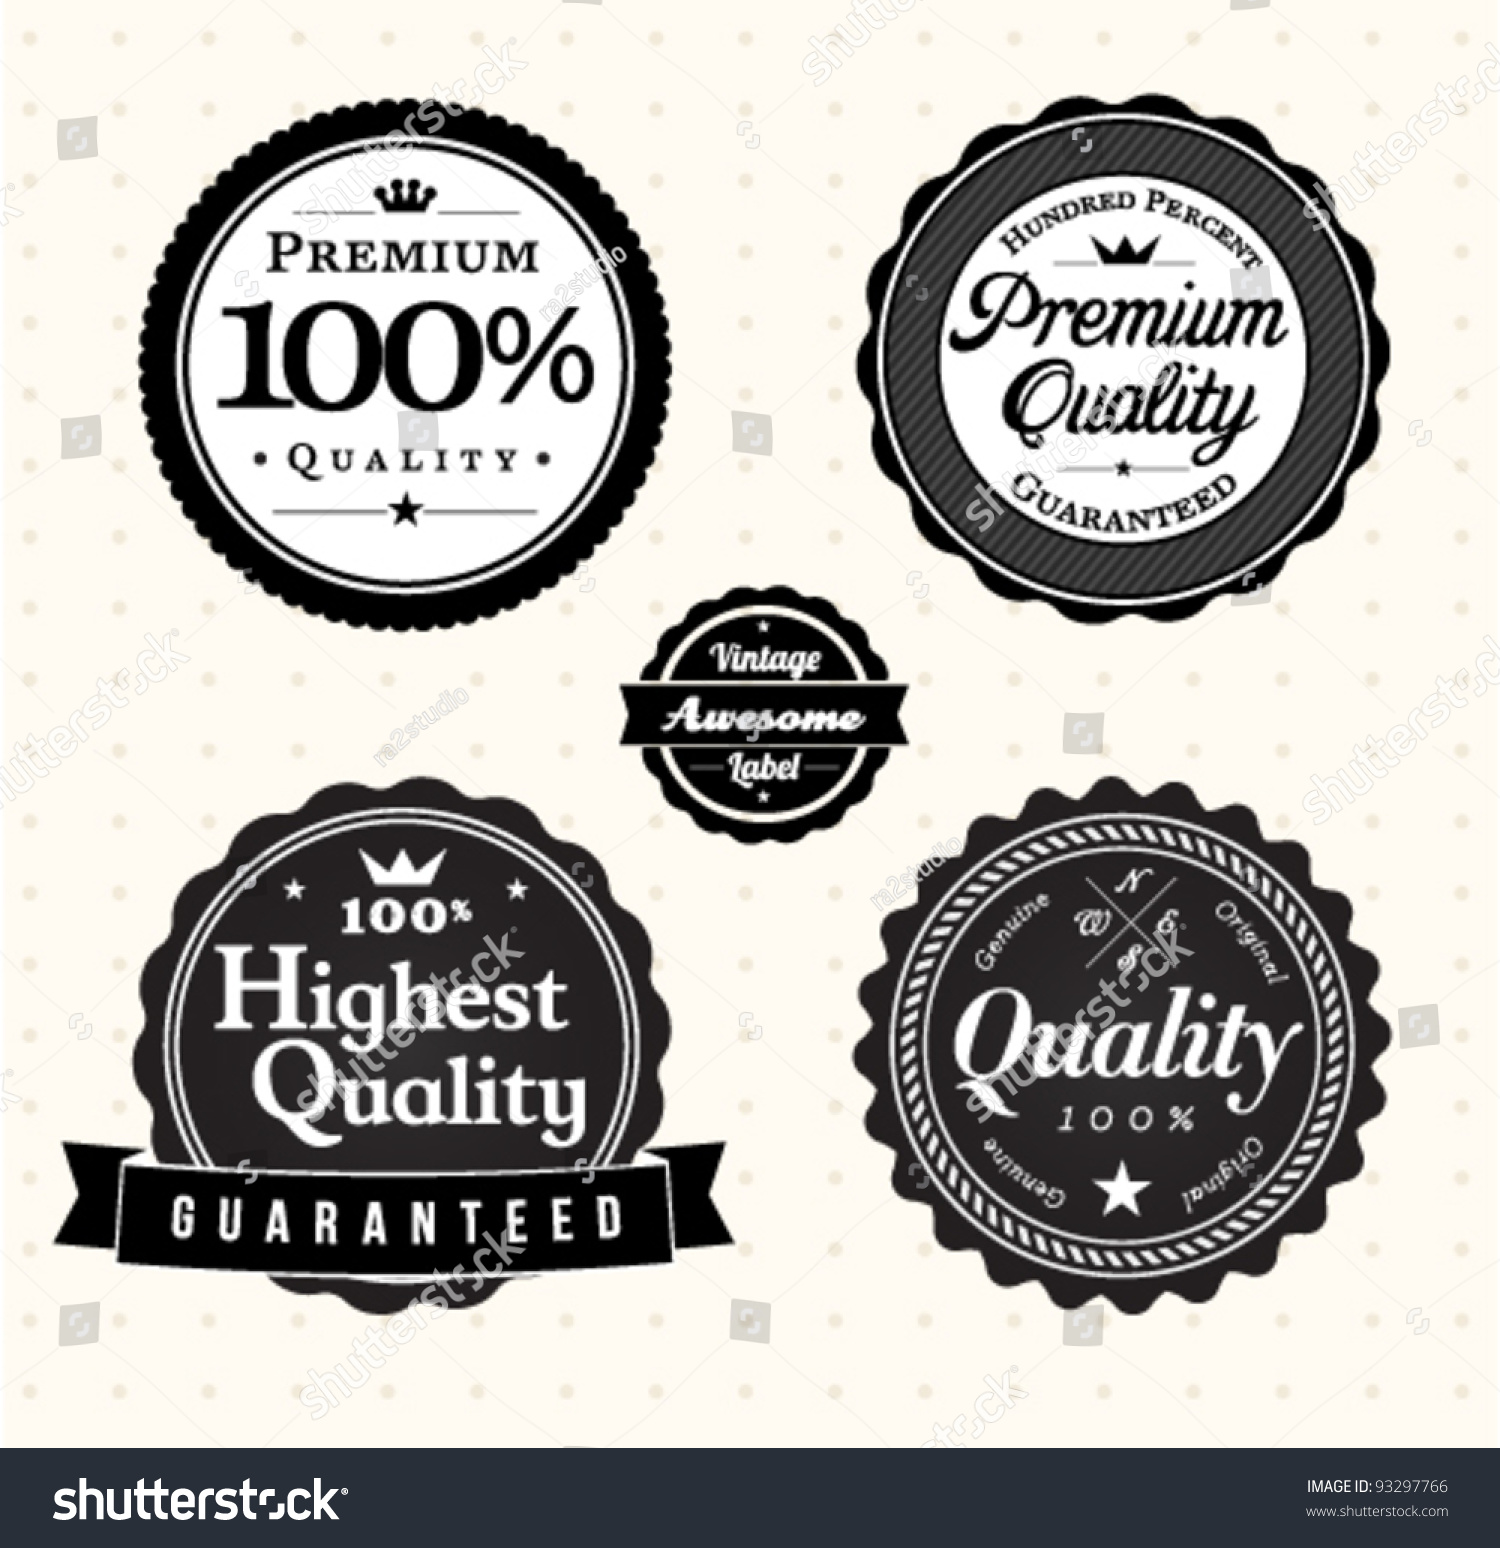 Quality Vintage Label Template Collection Stock Vector Royalty Free